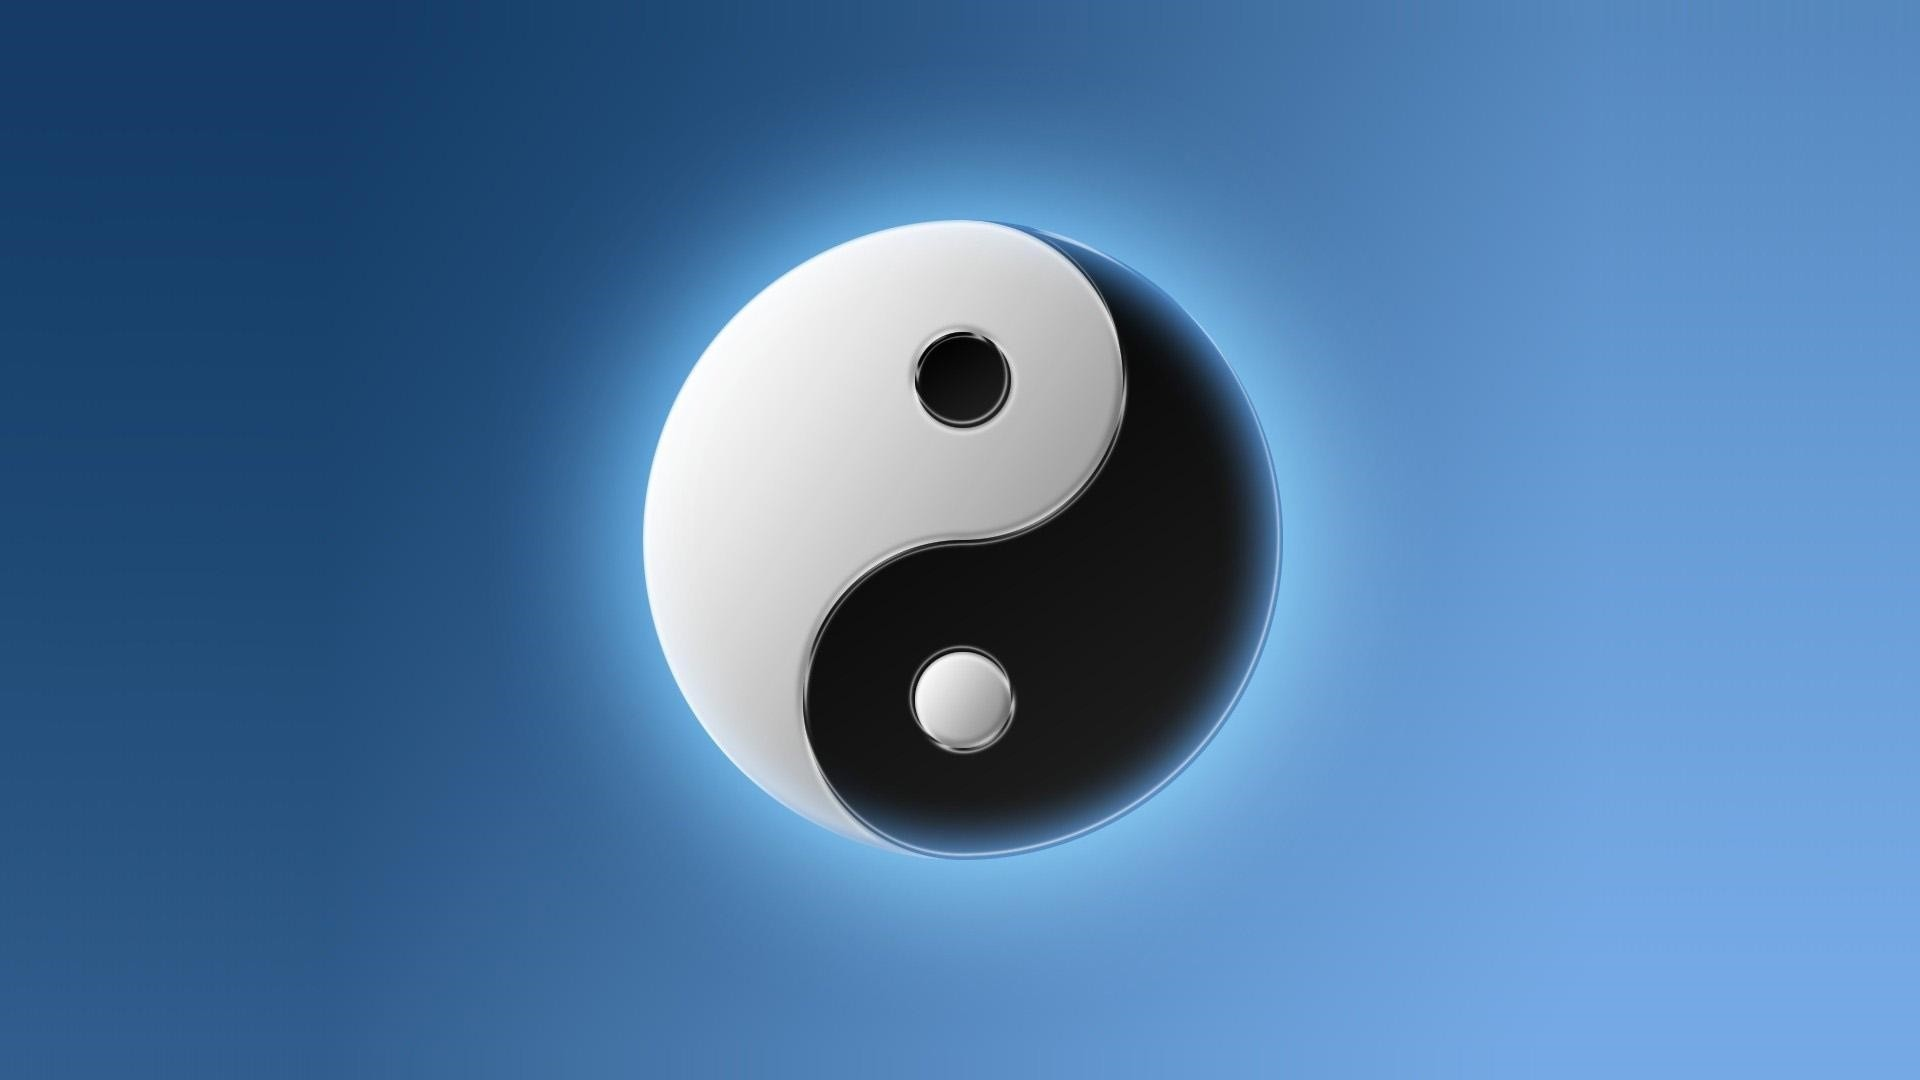 Yin Yang hd desktop wallpaper